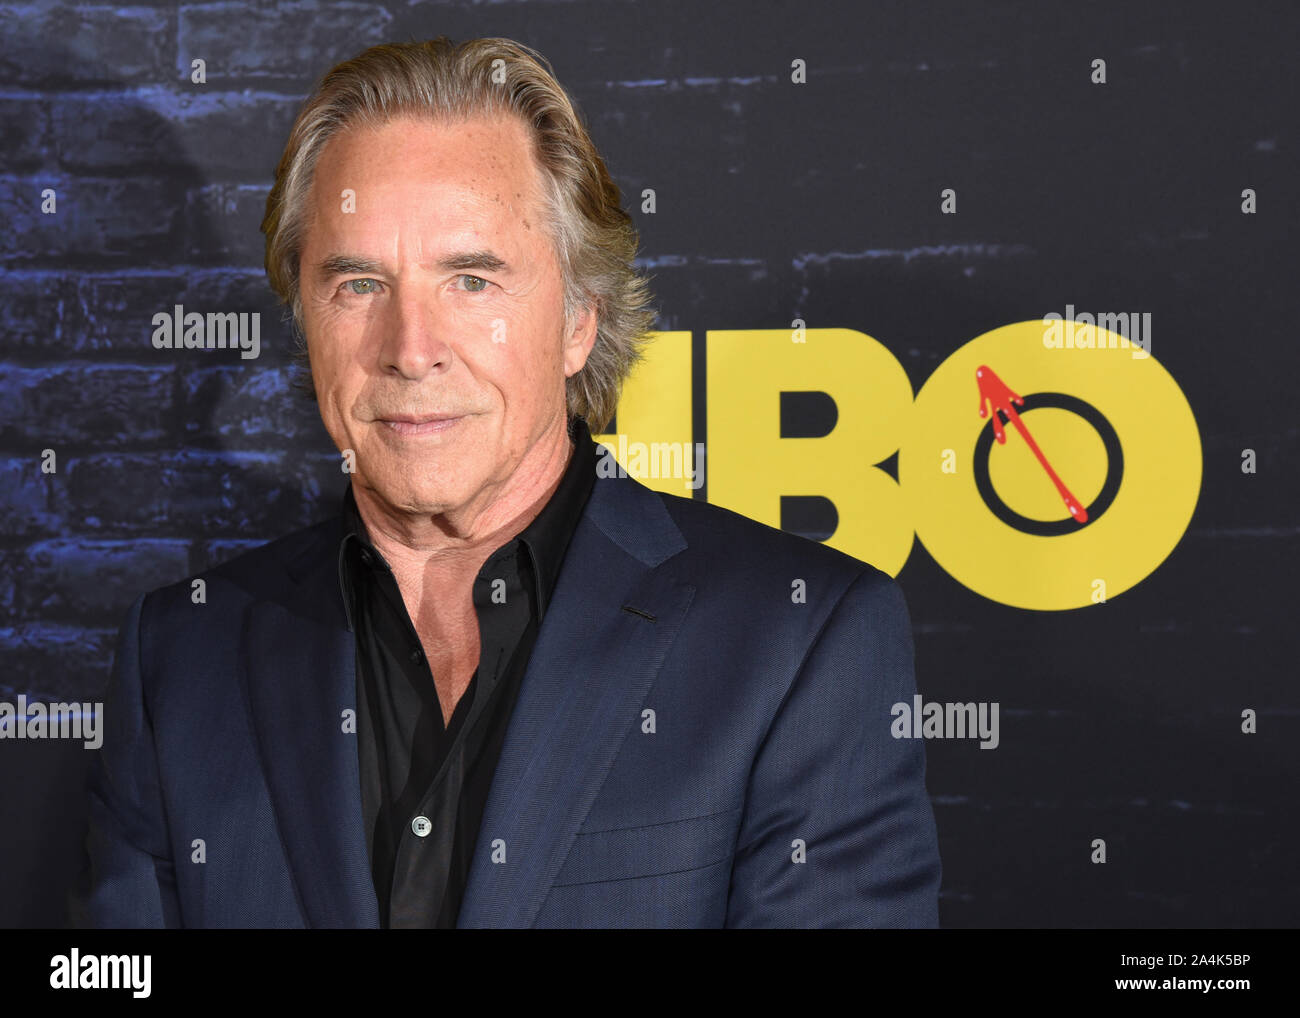 October 14, 2019, Hollywood, California, USA: Don Johnson attends the HBO Series Premiere of the Watchmen. (Credit Image: © Billy Bennight/ZUMA Wire) Stock Photo